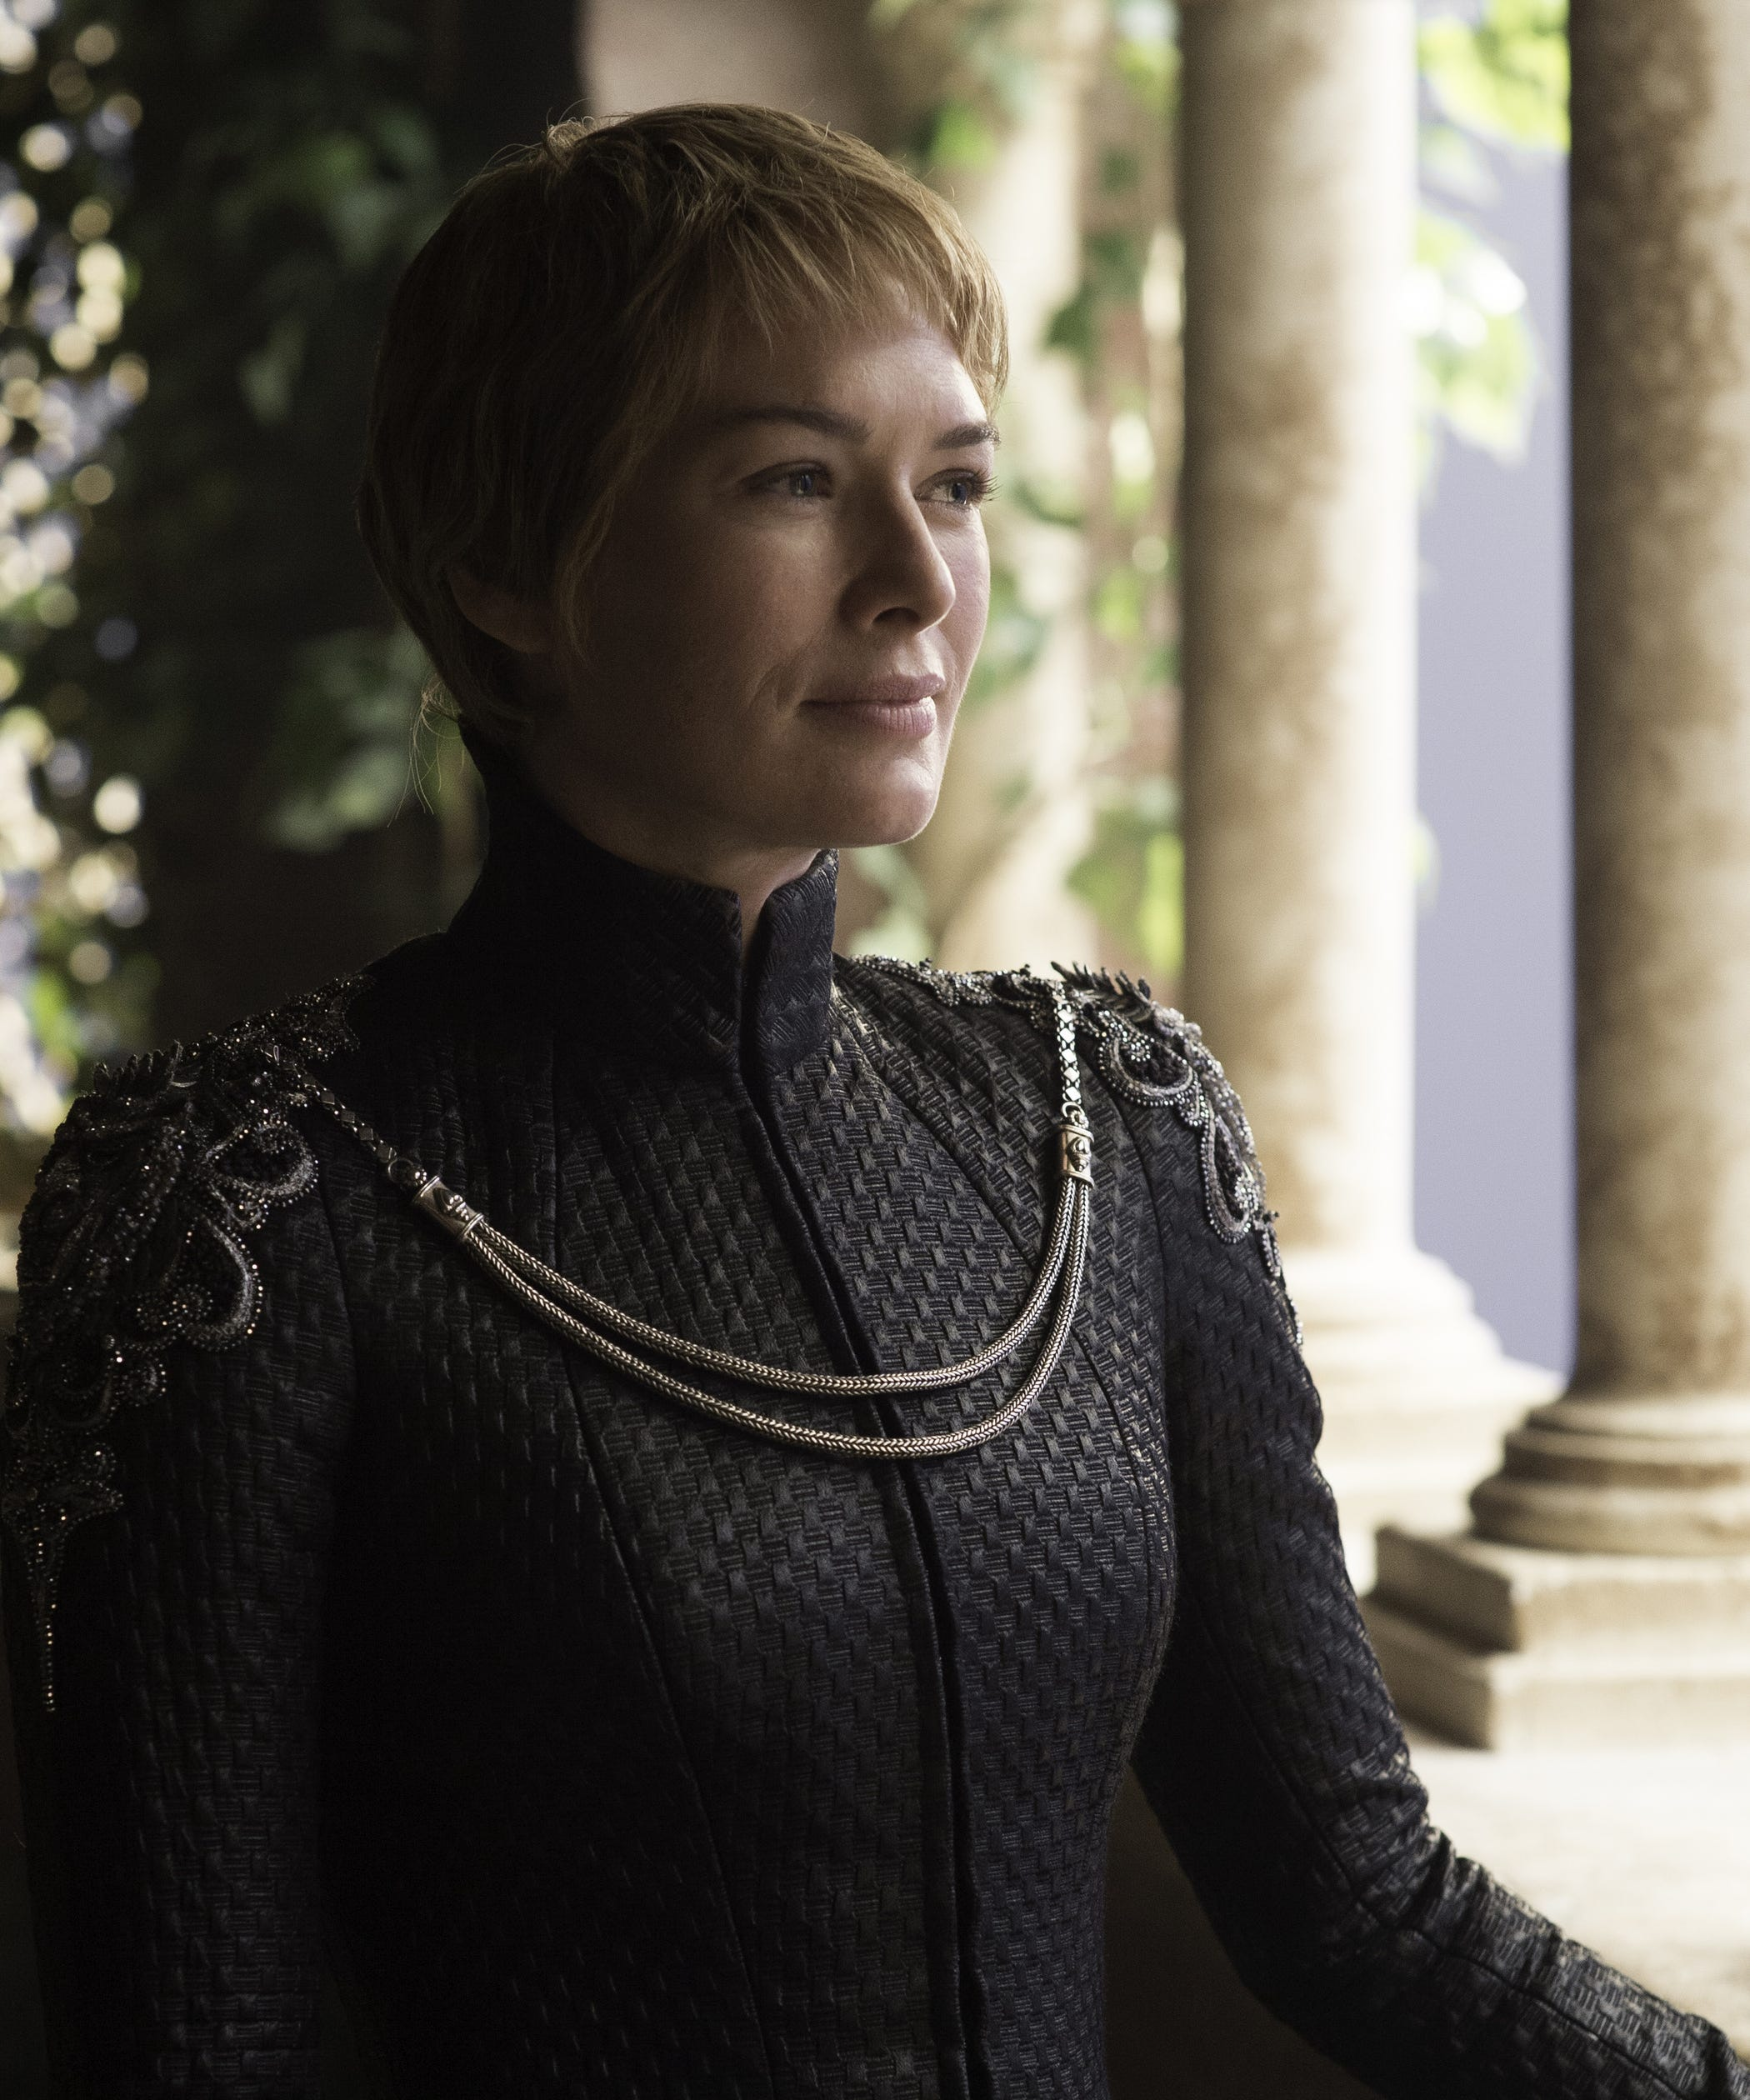 Rebecca Grant Tits Classy lena headey game of thrones deaths, cersei lannister